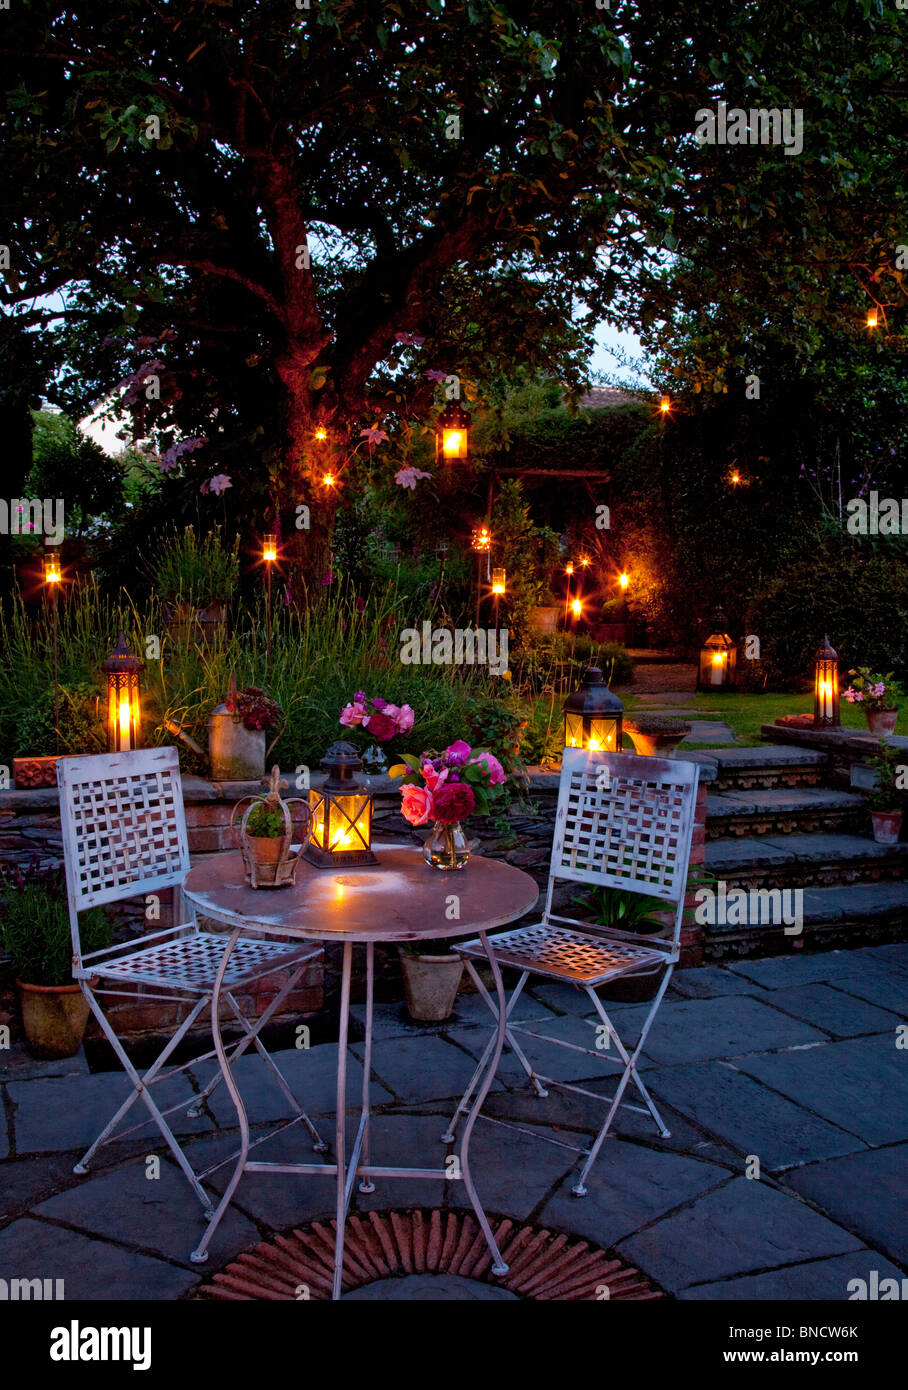 High Quality Metal Table And Chairs On Patio With Candles And Lanterns In Garden At Night